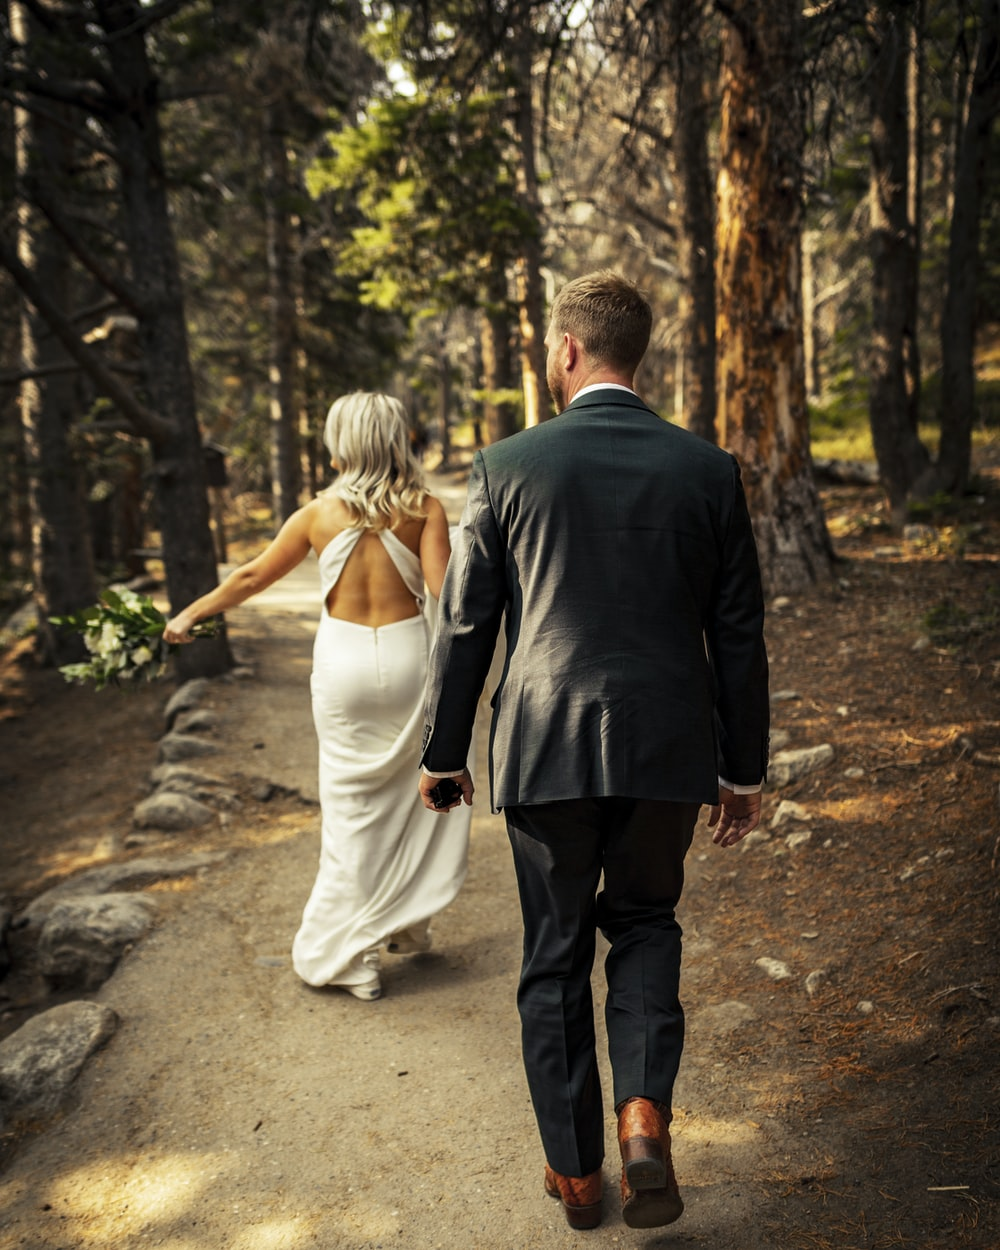 man in black suit jacket and woman in white dress walking on pathway during daytime